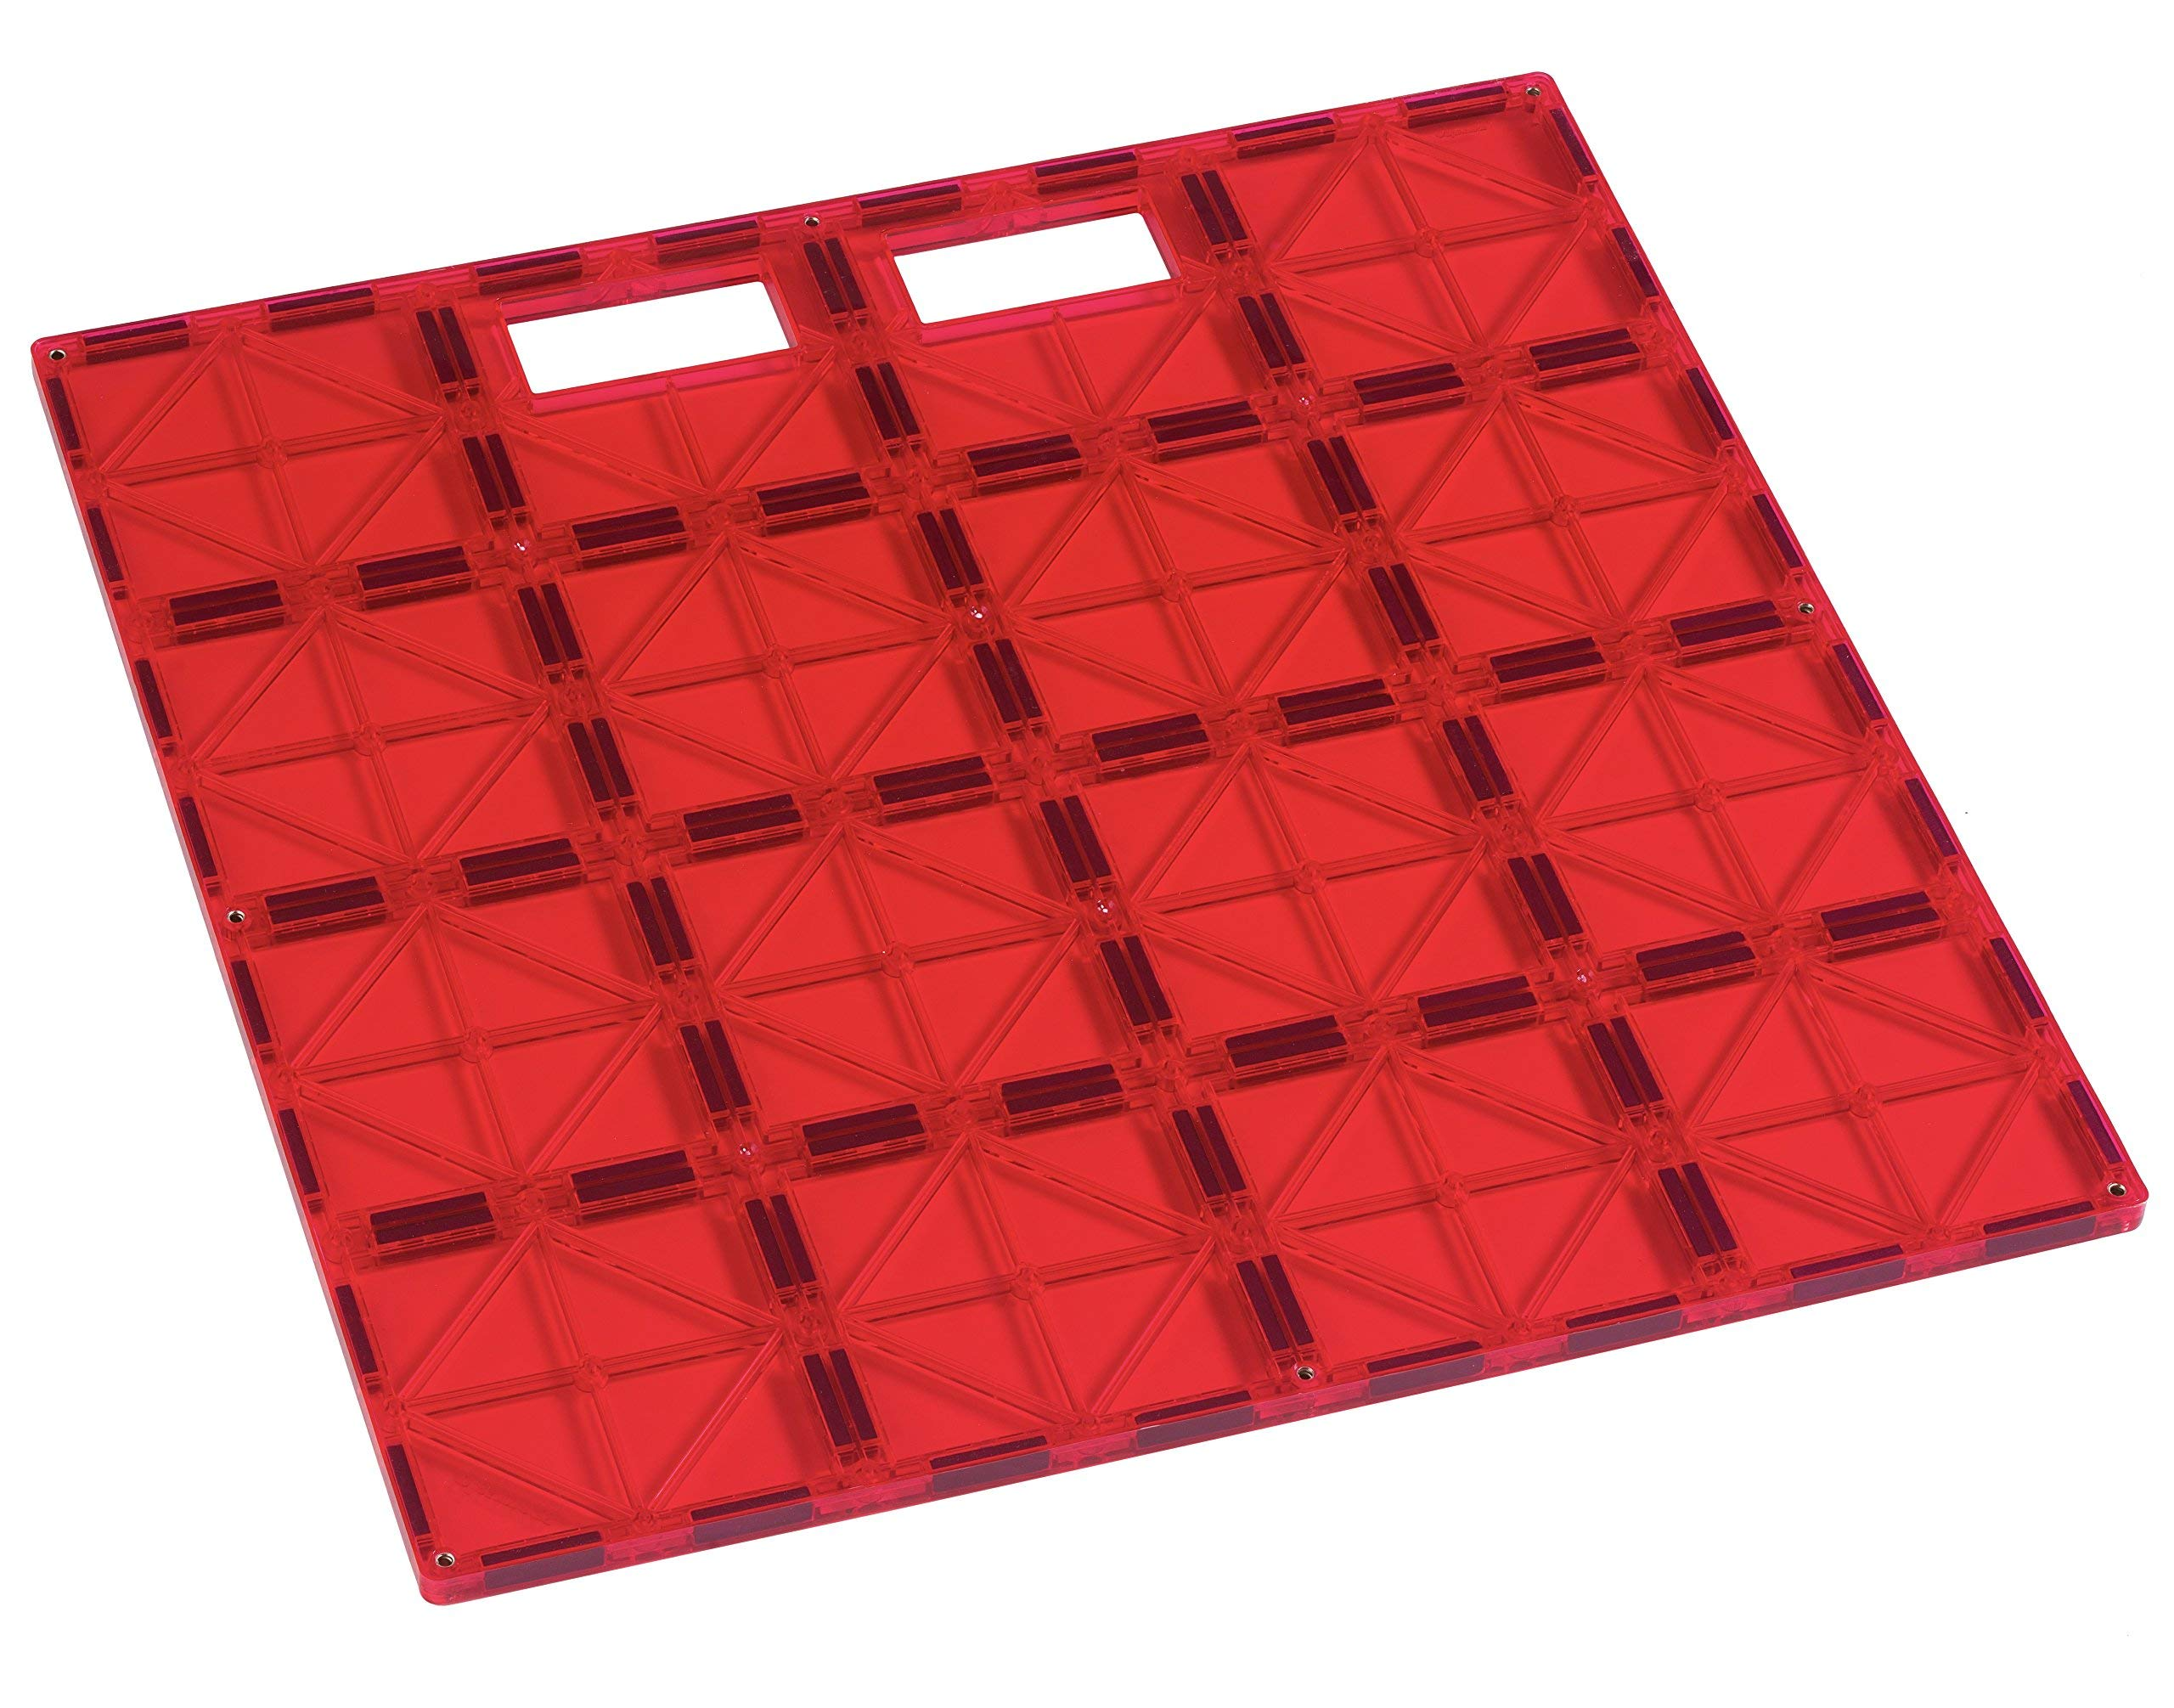 Playmags: Super Durable Building Stabilizer Tile 12x12 with Carrying Handle for Easy Play, Great add on to All Magnet Tiles Sets, Works with All Leading Brands (Colors May Vary)